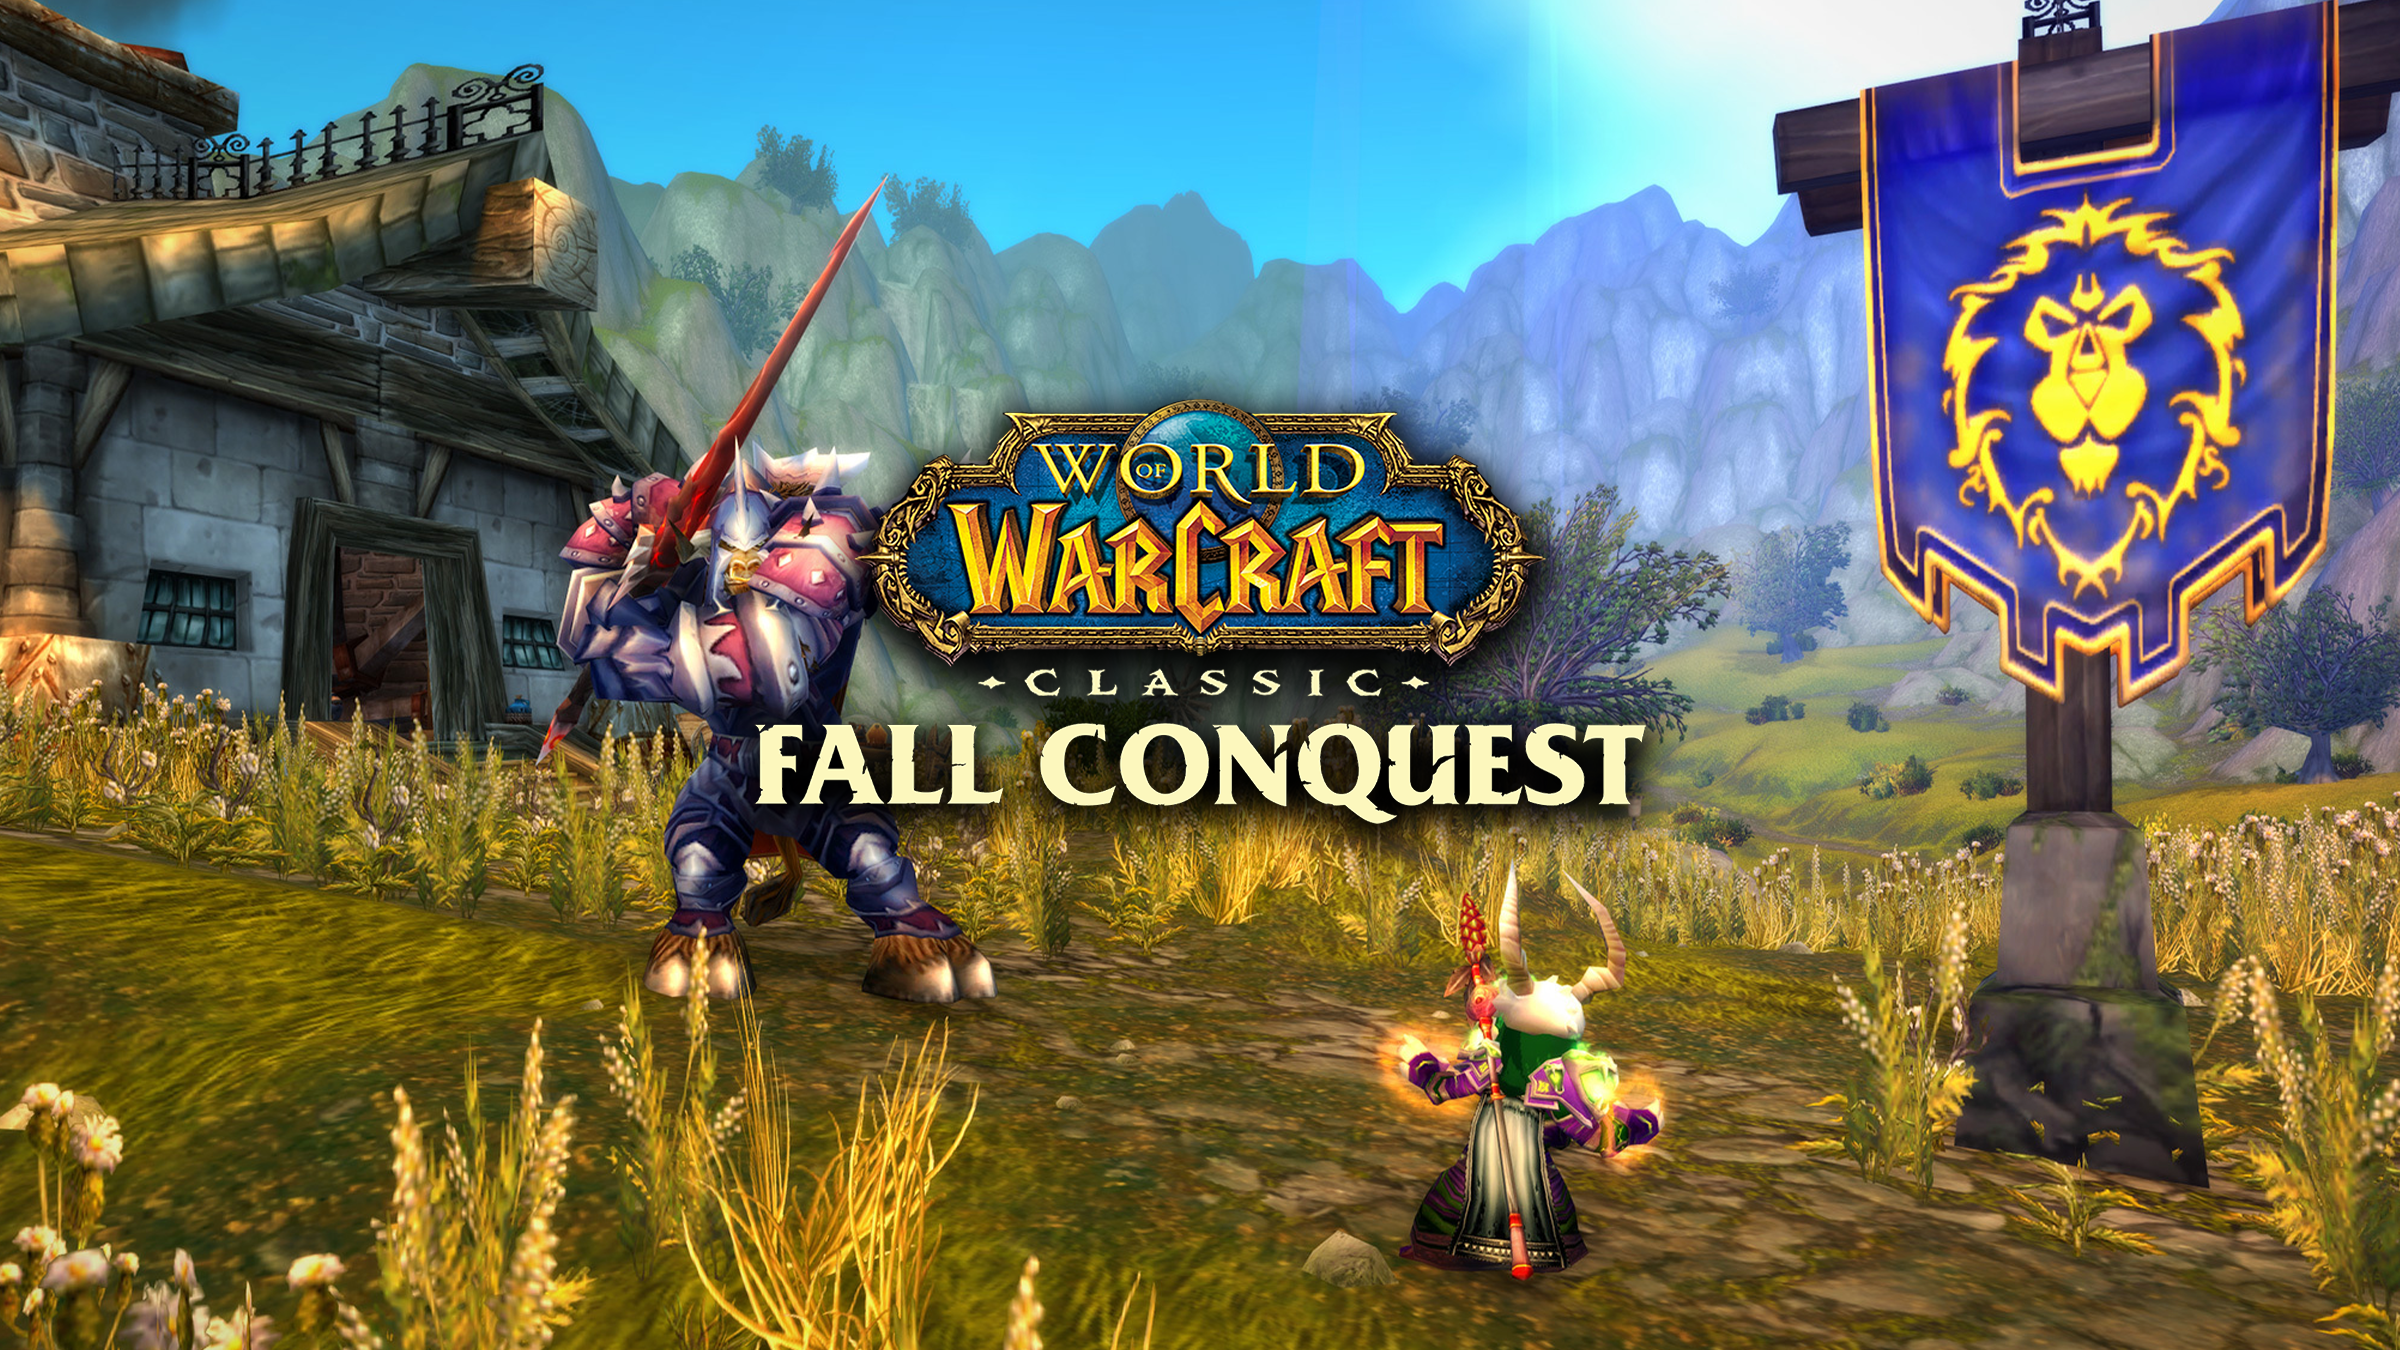 Представляем турнир World of Warcraft Classic Fall Conquest